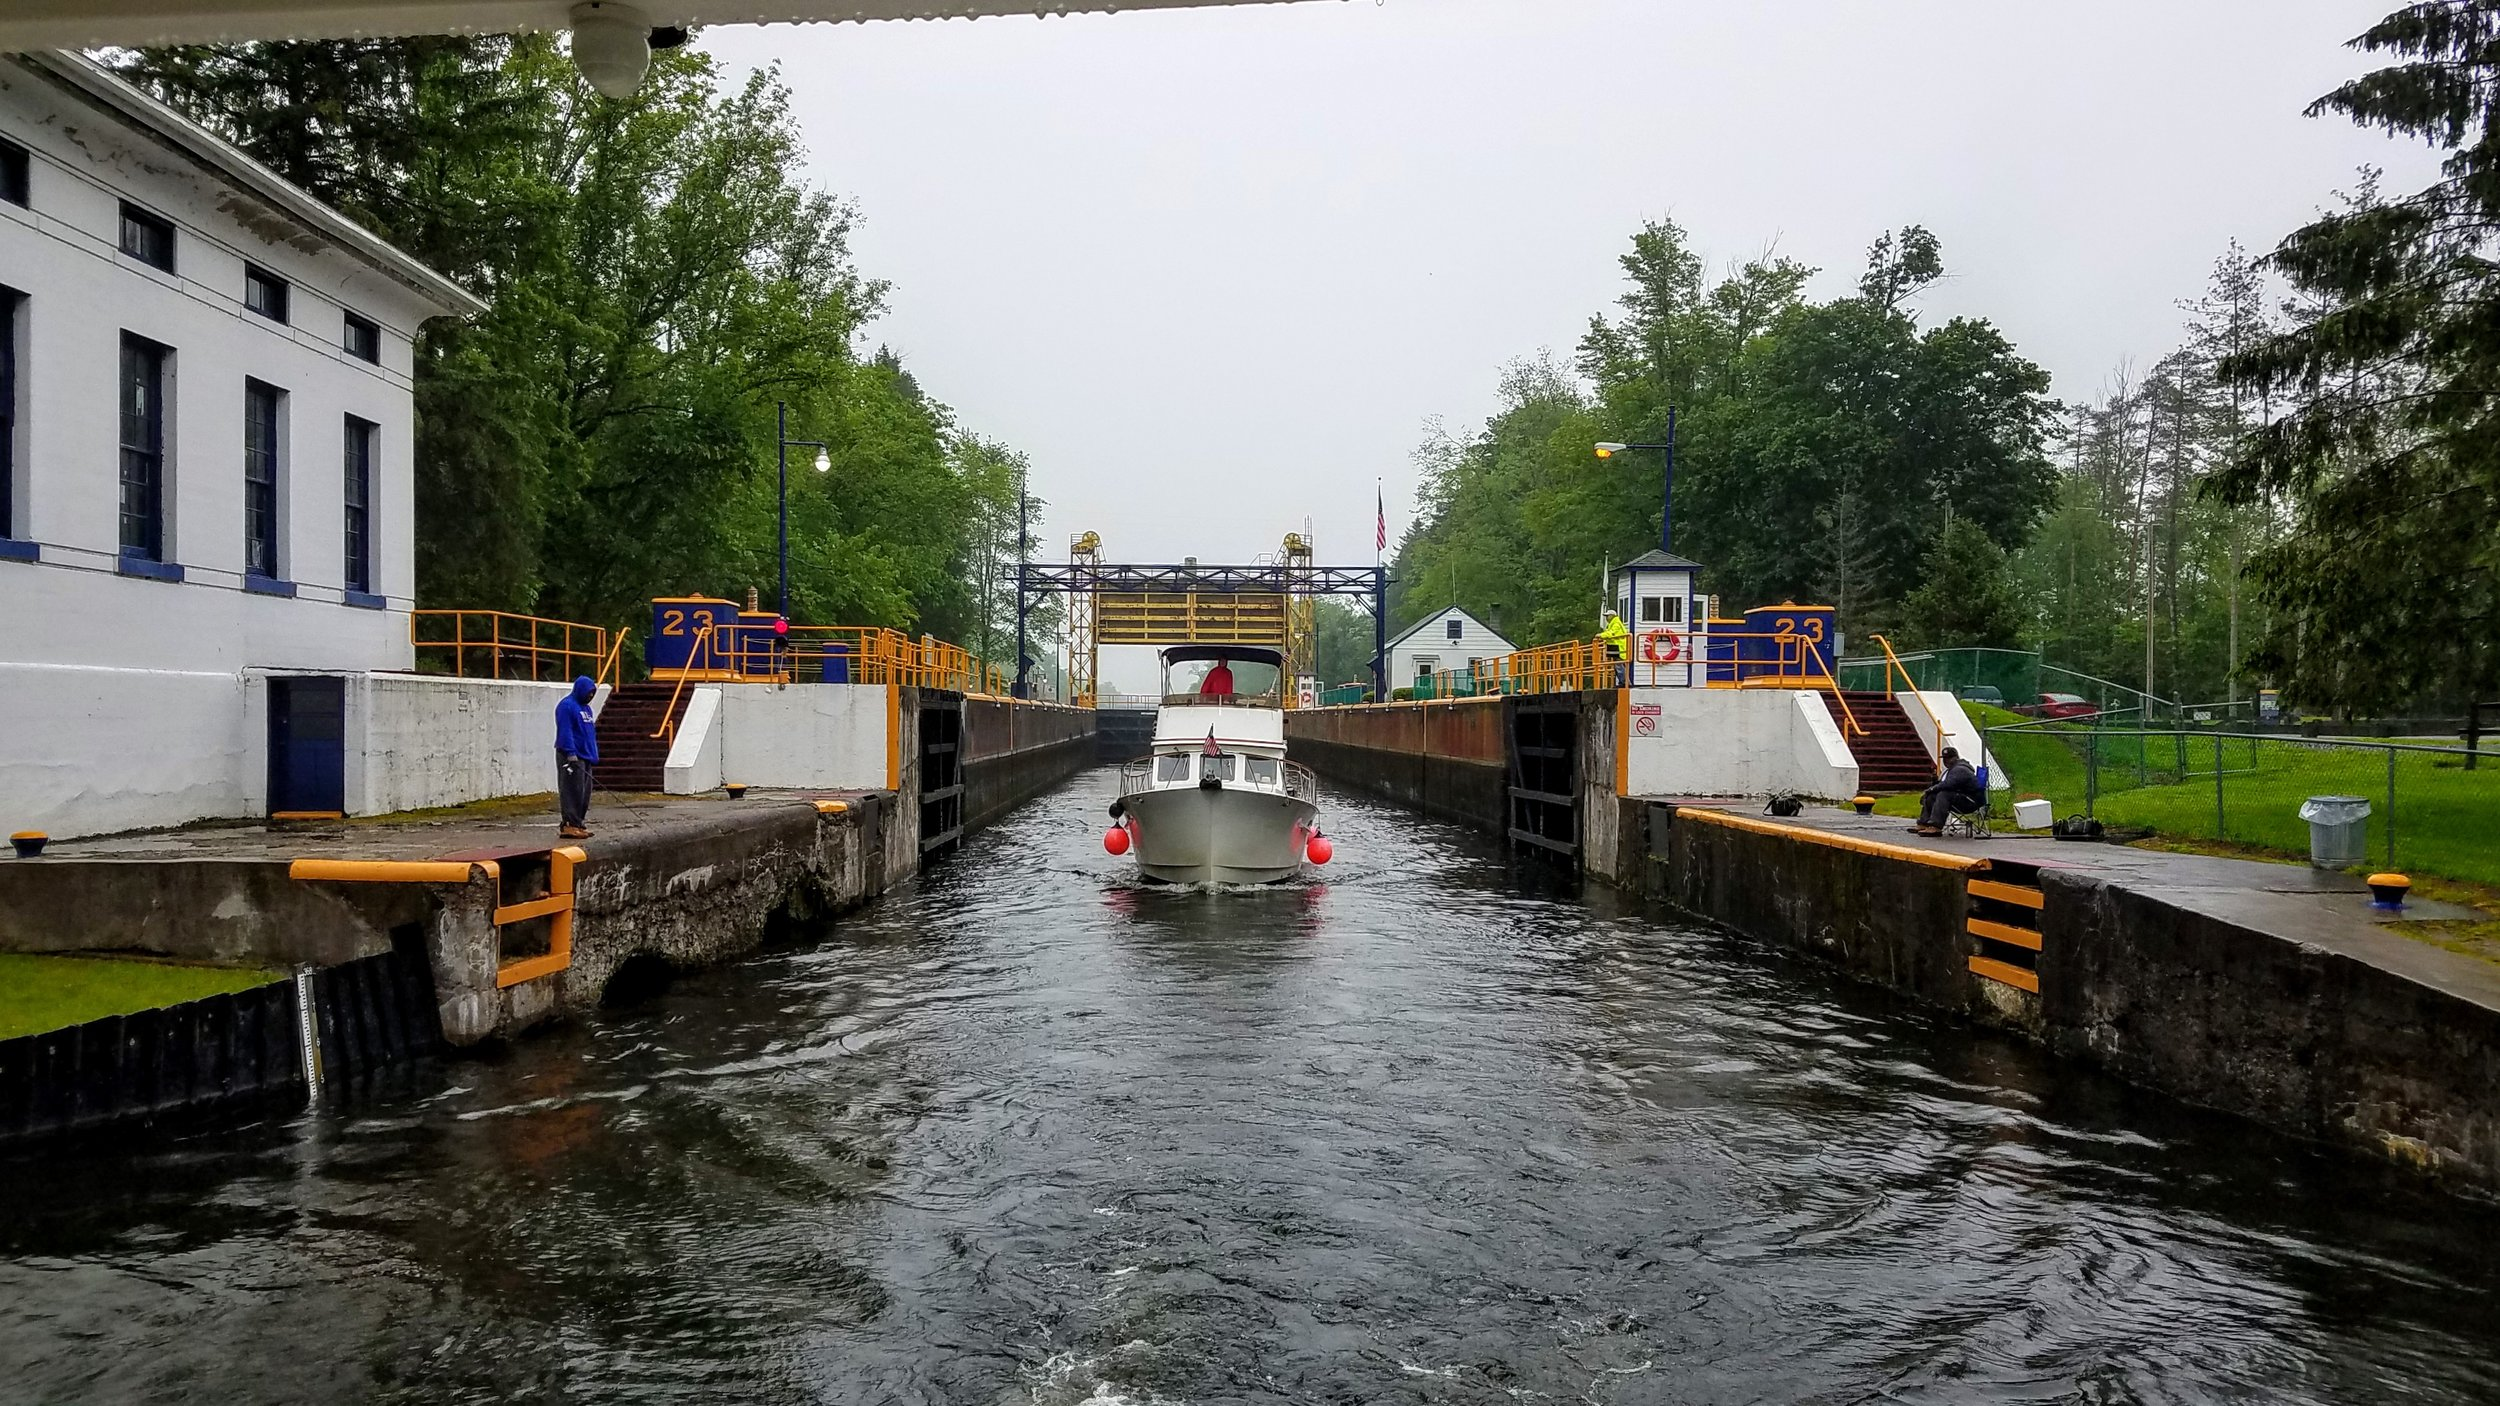 Departing lock 23. We were trailed today by this boat named 'Comet'